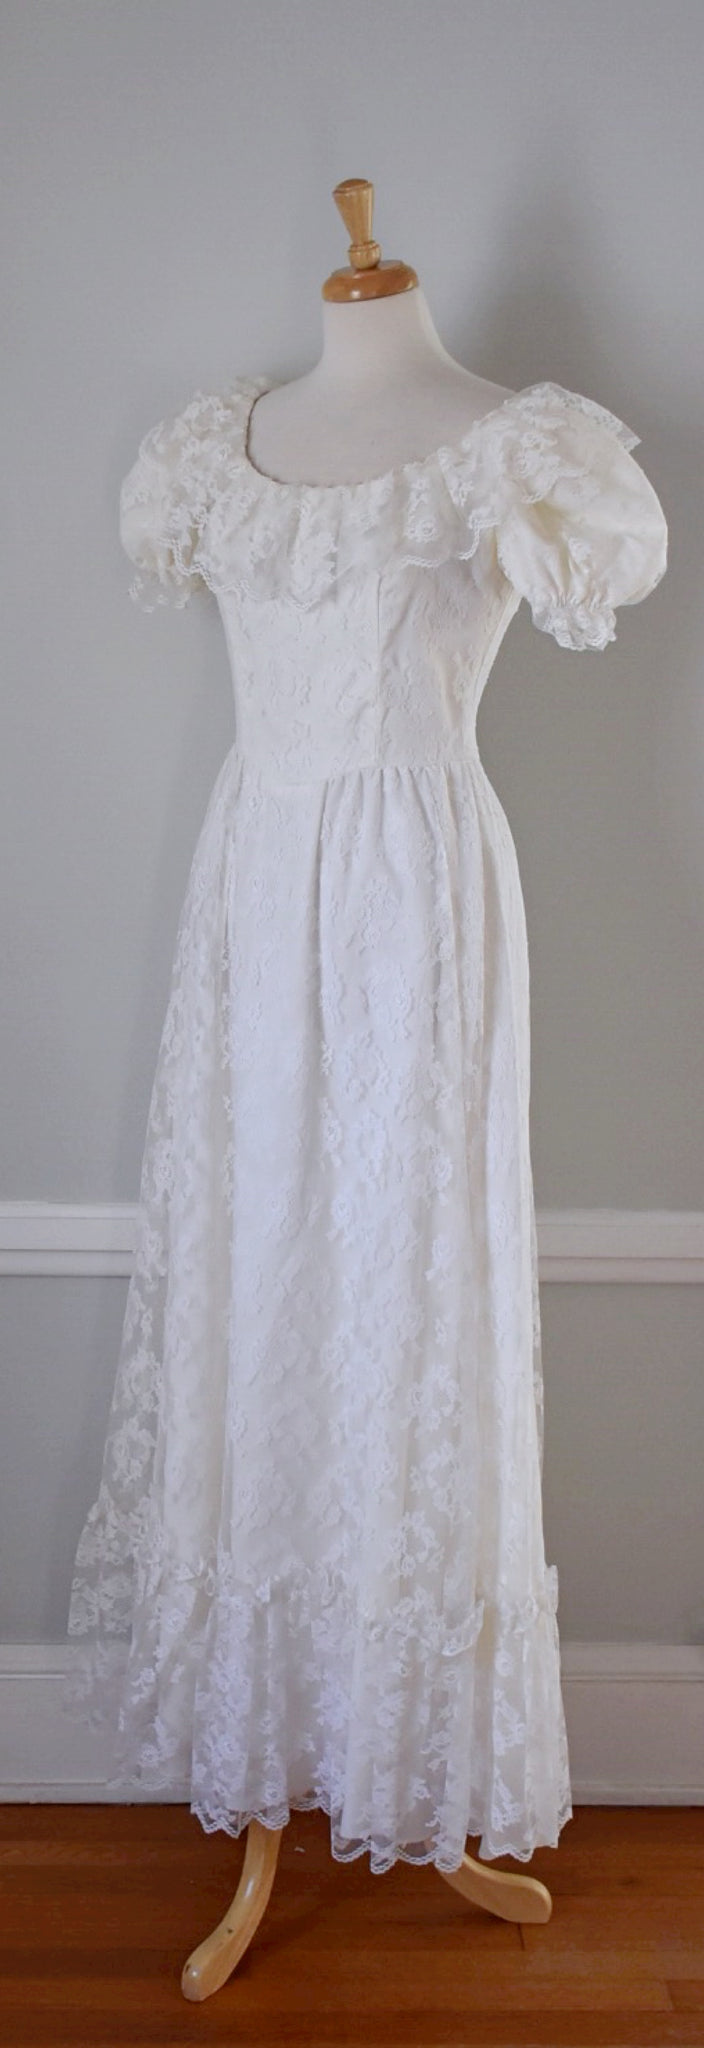 Vintage Boho Lace Wedding Dress